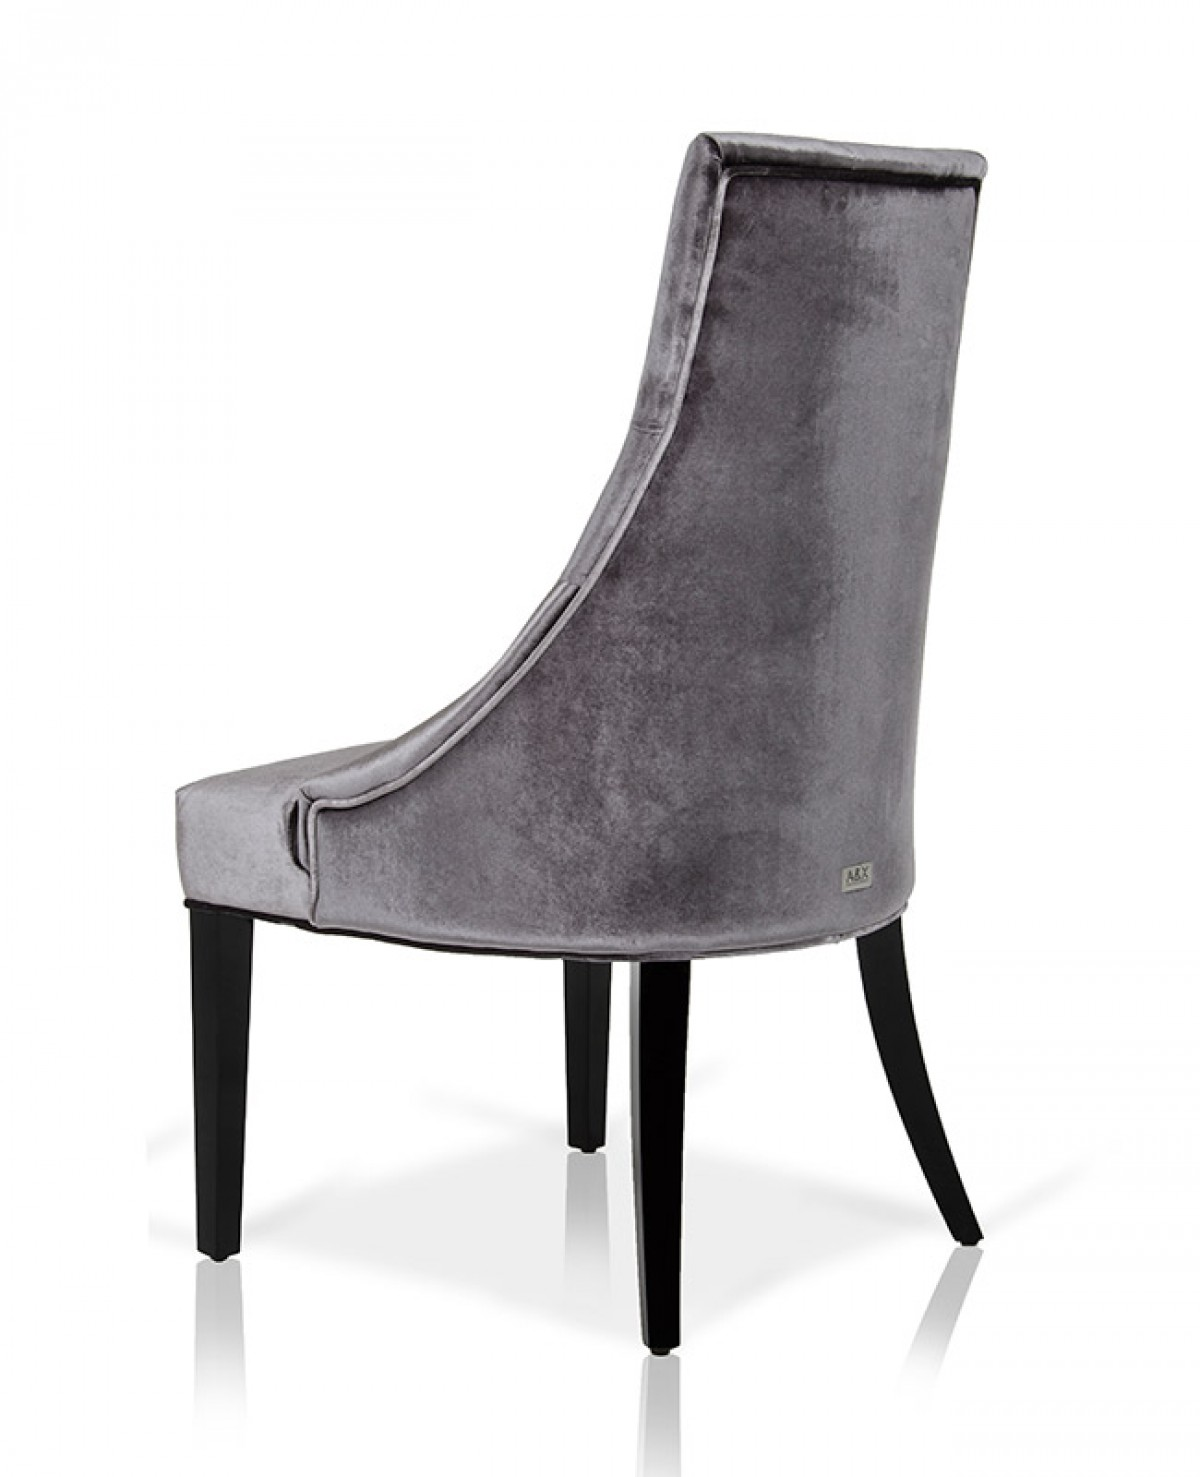 Charlotte Grey Velour Dining Chair Set of 2 Dining  : image3279 from www.vigfurniture.com size 1200 x 1477 jpeg 123kB